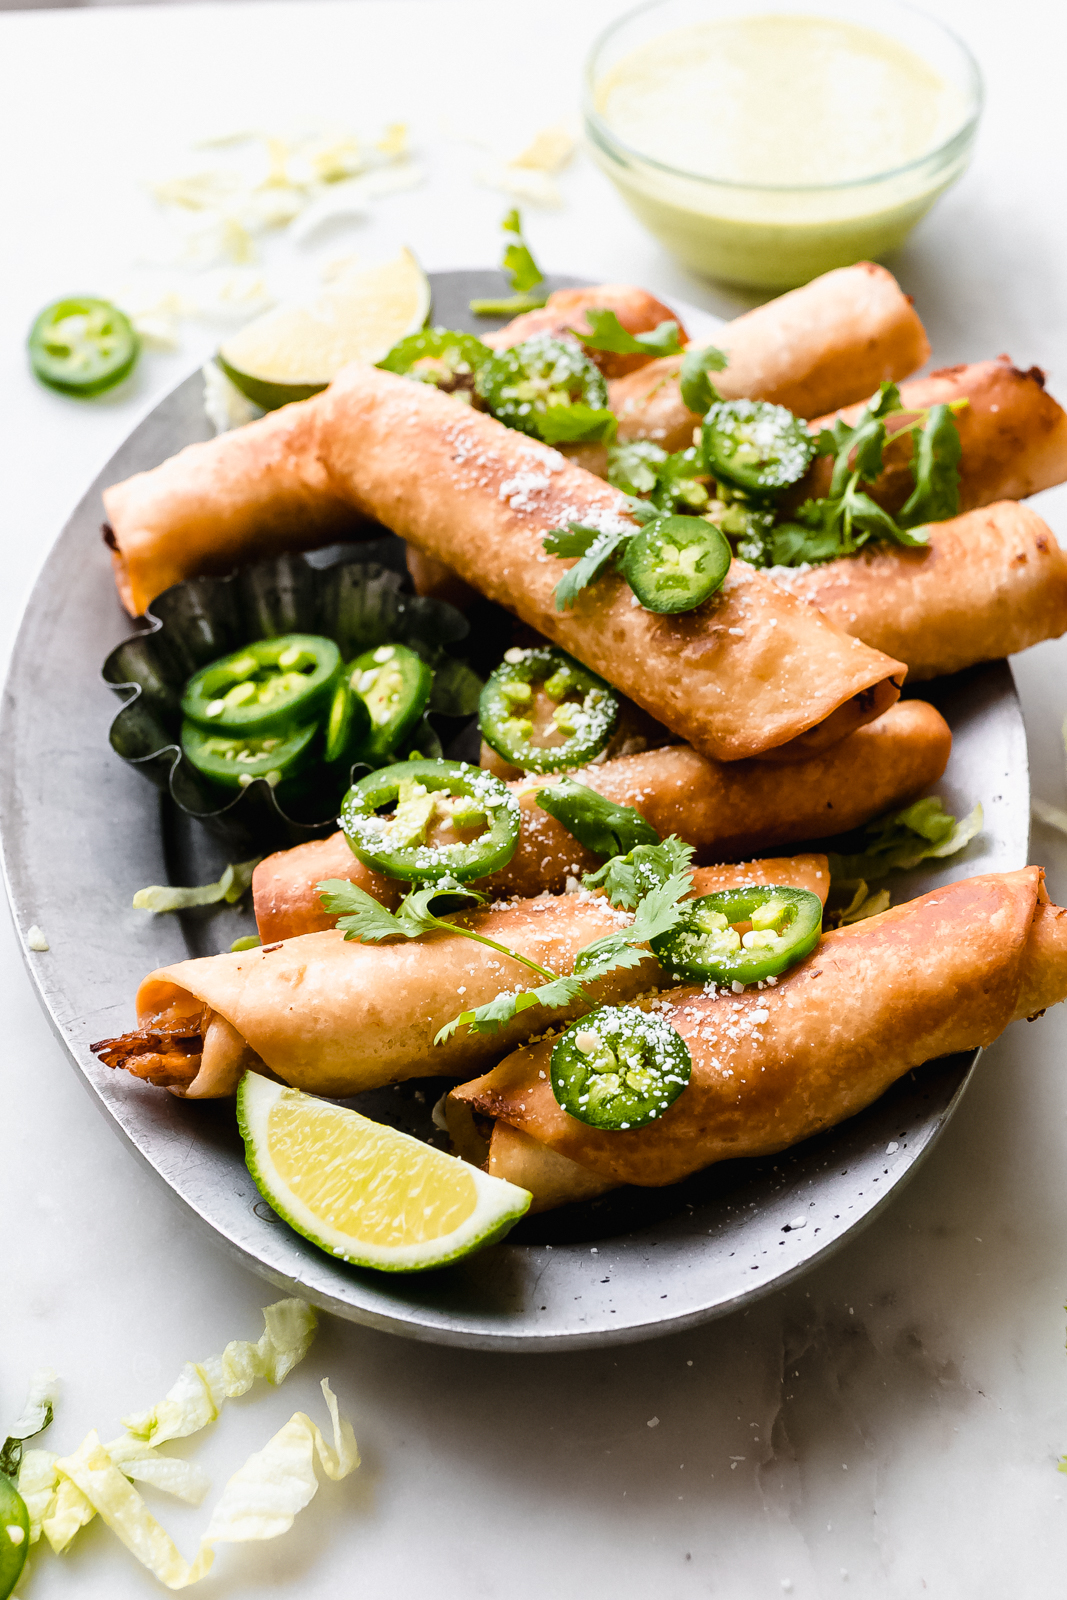 metal plate with prepared fried taquitos sprinkled with jalapeño slices, cilantro, and cheese